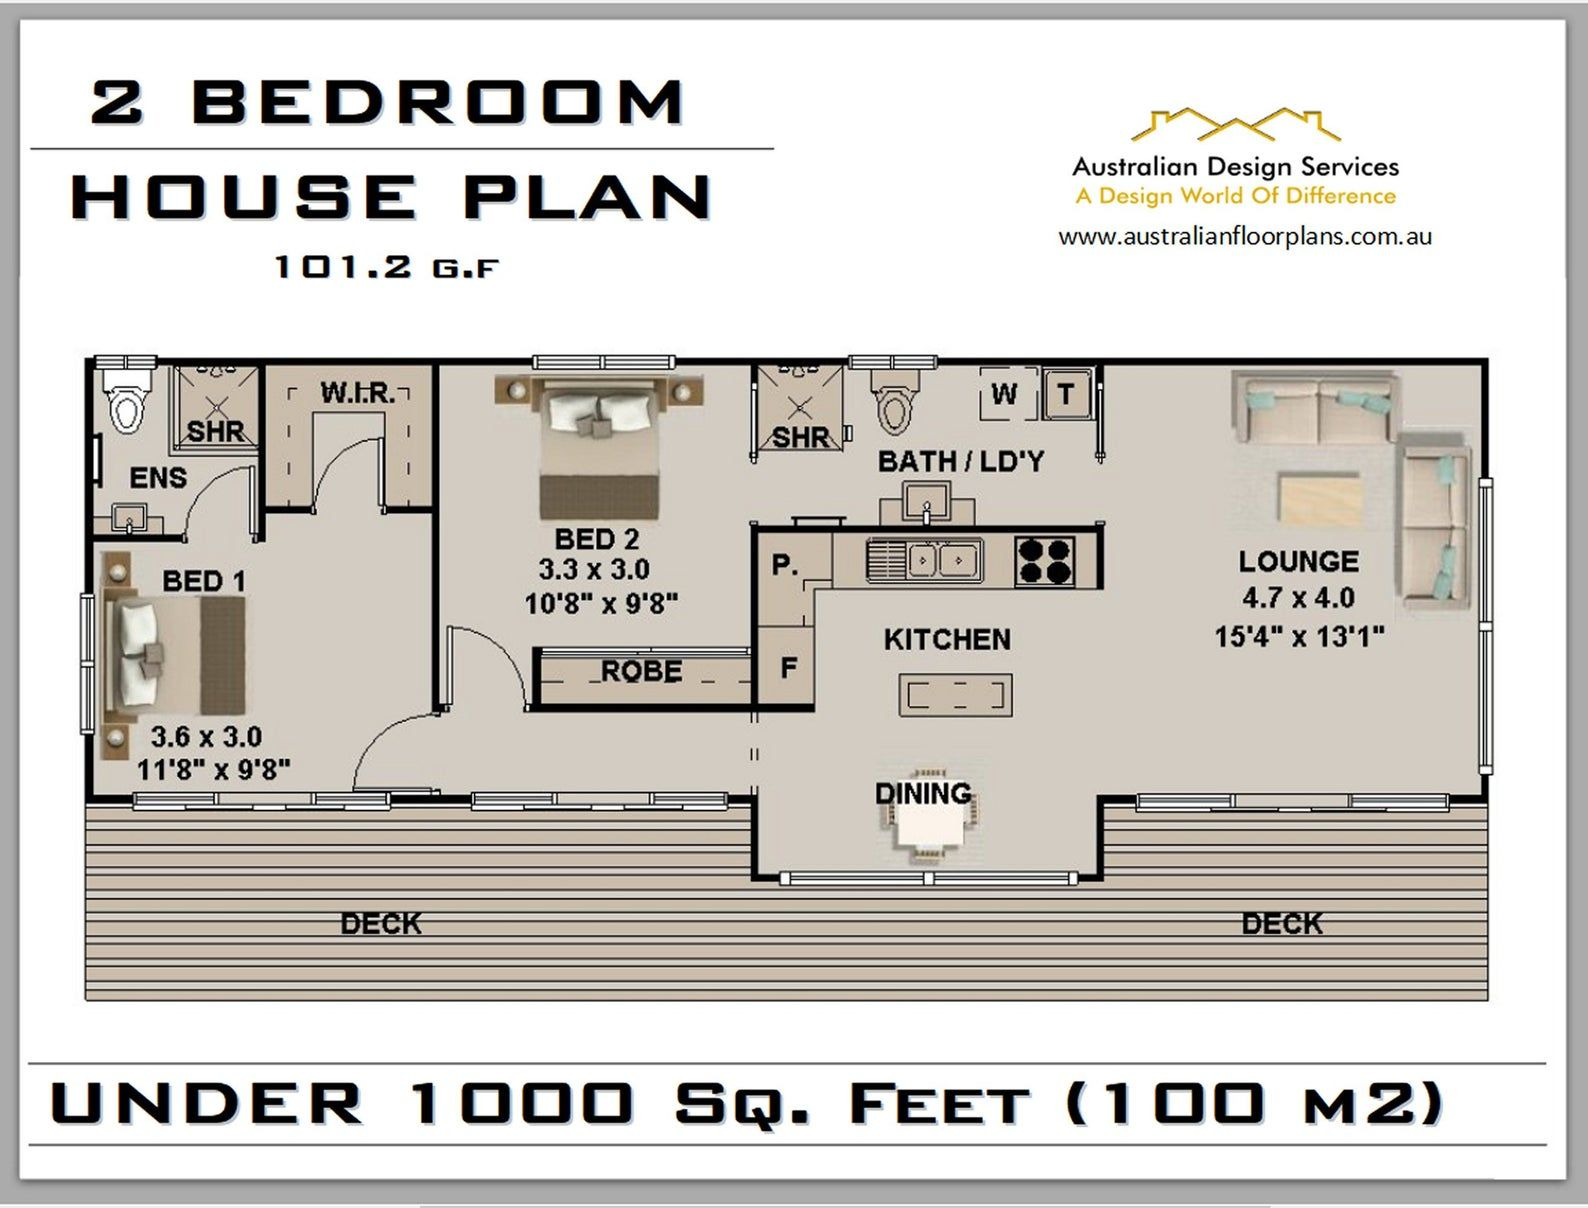 101 2 Clm Floor Area 785 7 Sq Ft 2 Bedroom House Plan 2 Bedroom Home Plan Blueprints Concept House Plans For Sale In 2021 House Plans For Sale Small House Floor Plans House Plans